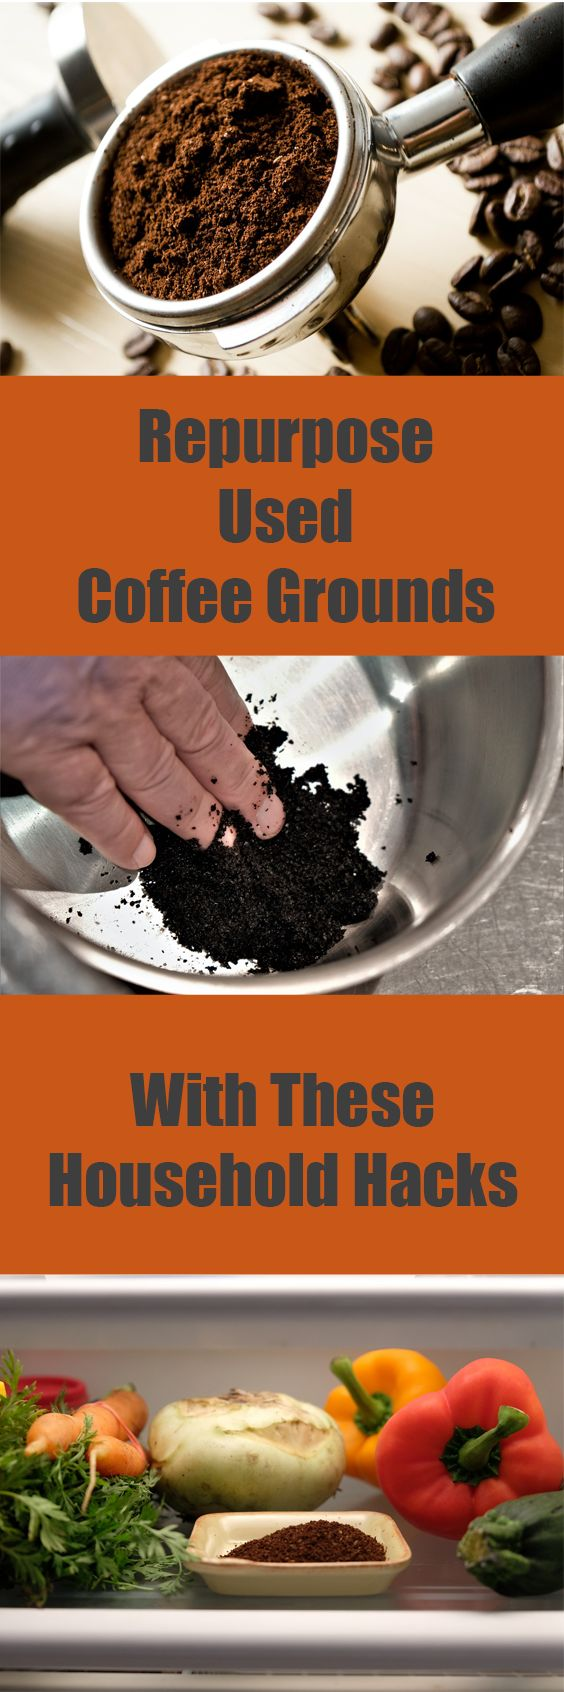 Instead of ditching those grounds after coffee brewing, consider these surprising and effortlessly simple household hacks for repurposing leftover coffee grinds at home!